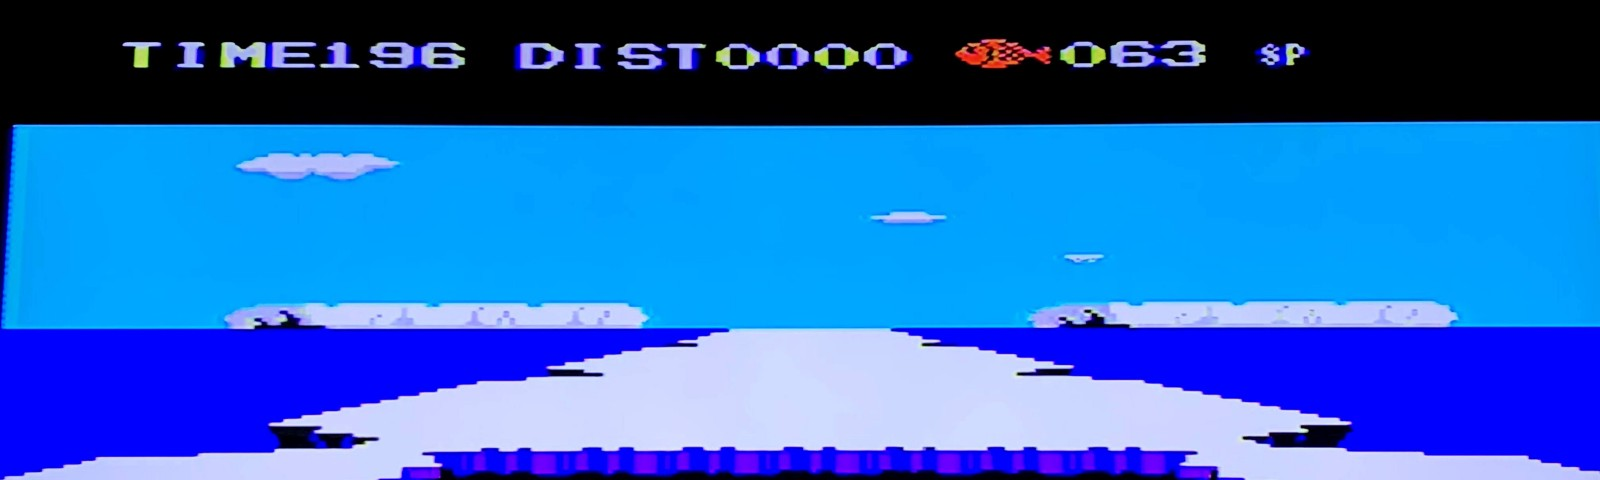 Scene from Penguin Adventure where penguins dance in an arctic landscape after beating a boss level.